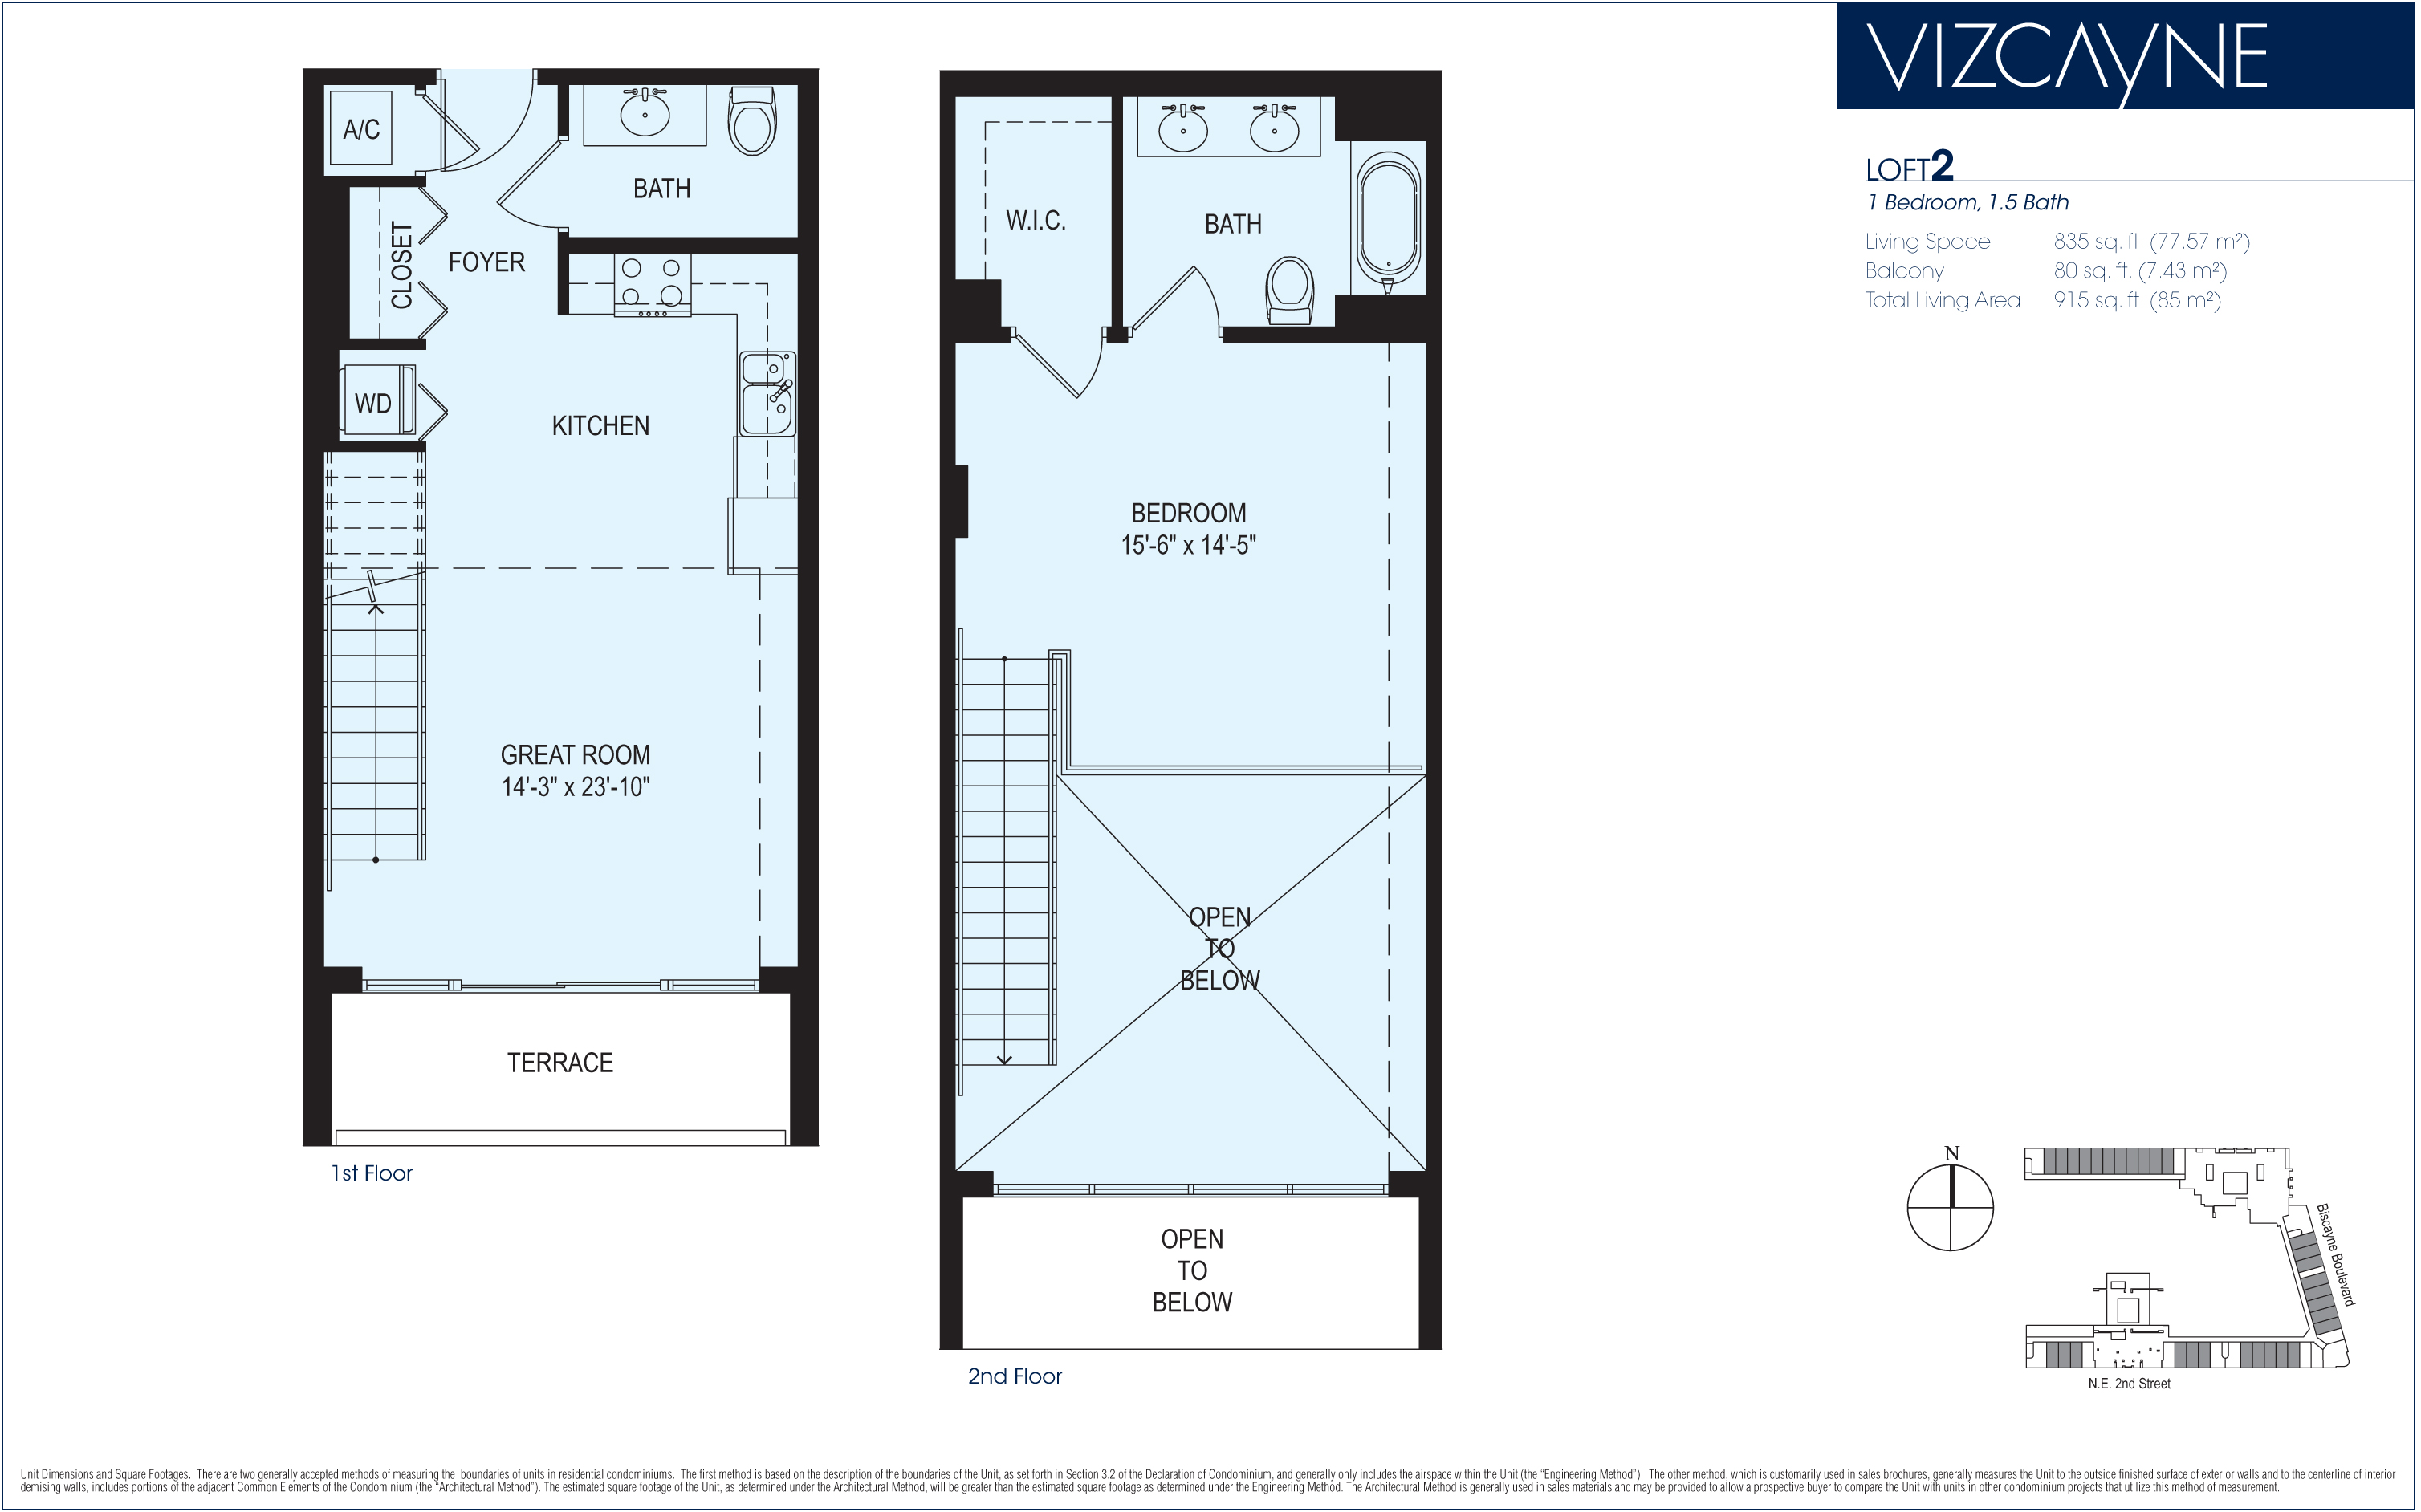 Vizcayne tower floorplans miami Two story house plans with loft